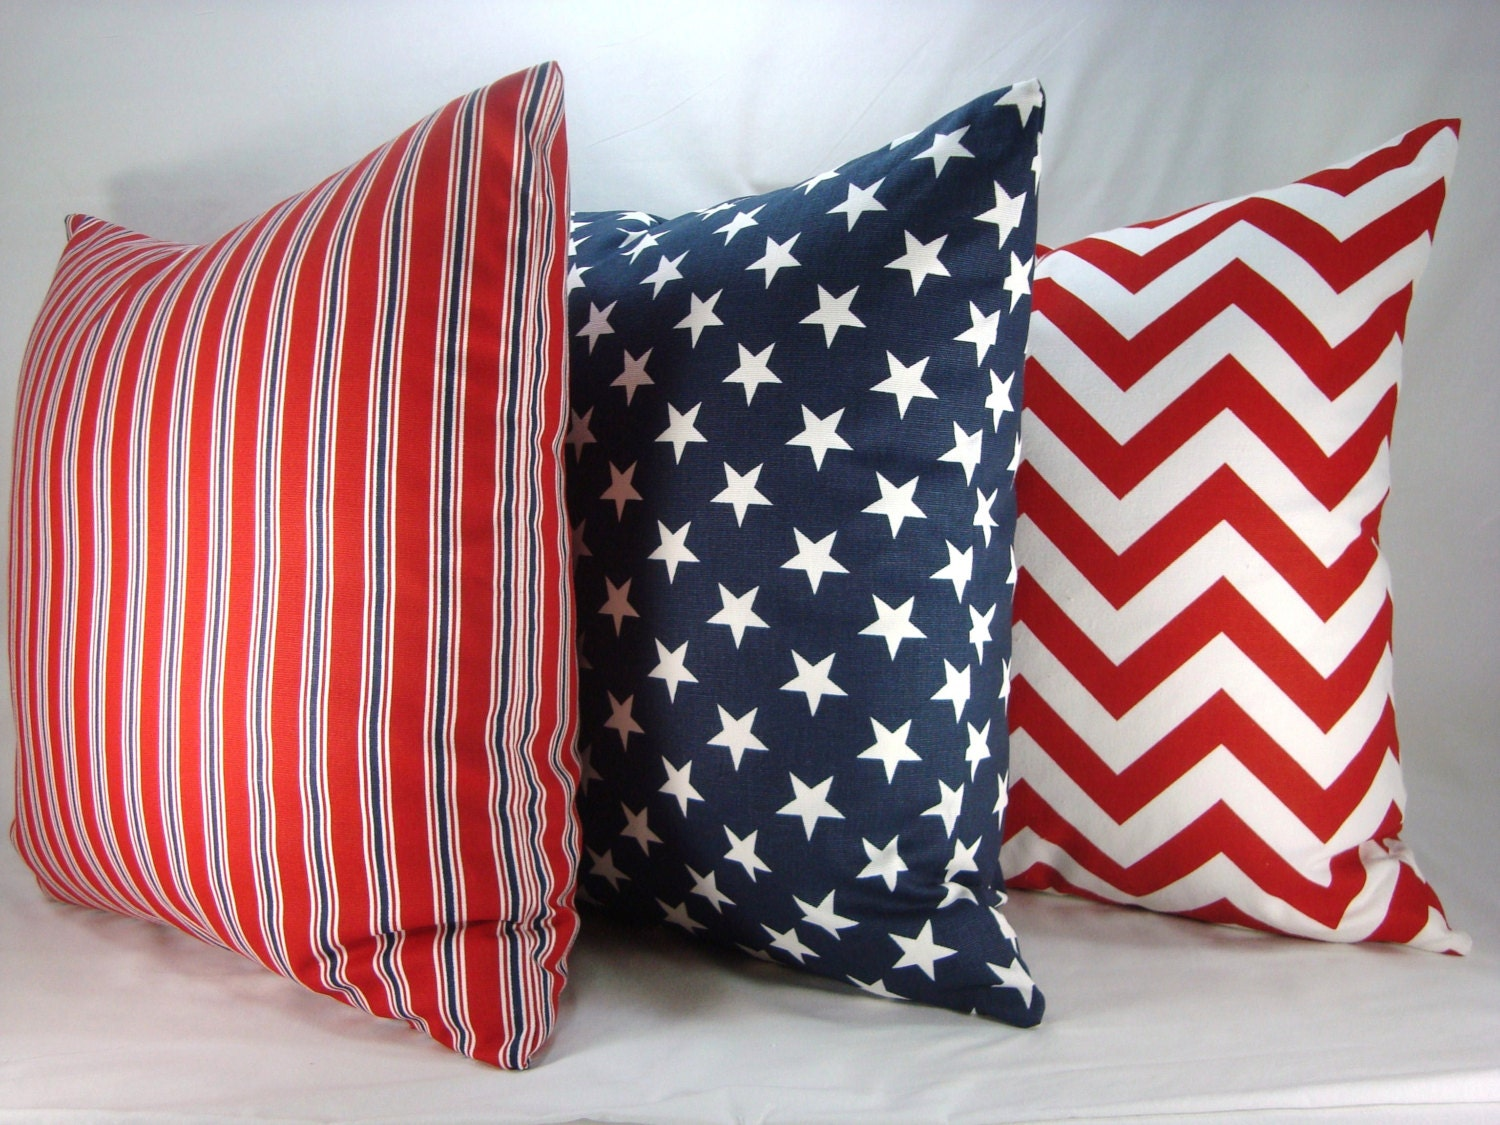 red white and blue decorative pillows accent toss pillows set. Black Bedroom Furniture Sets. Home Design Ideas